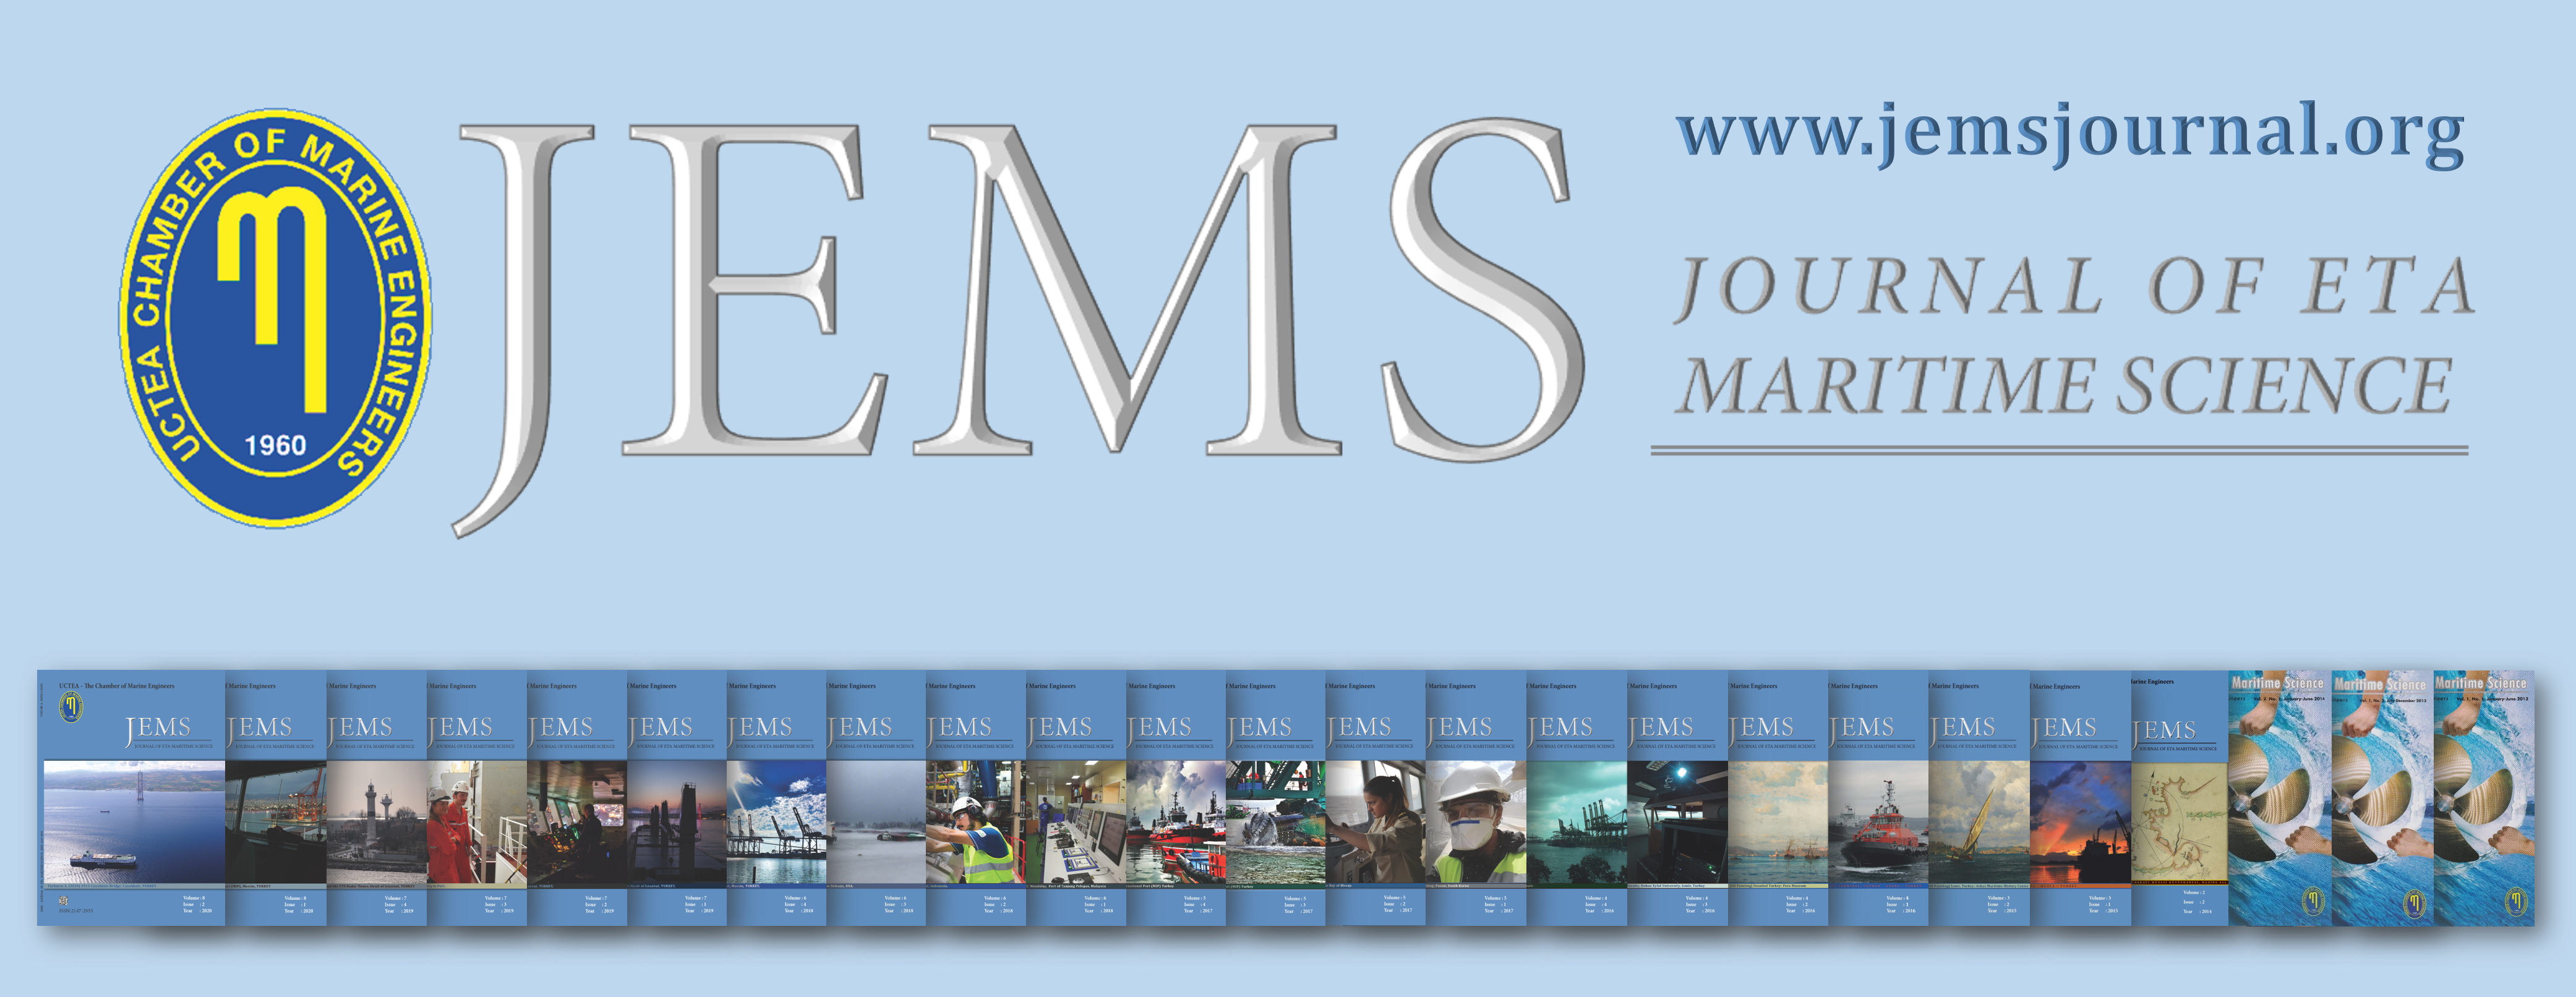 jems-1.png